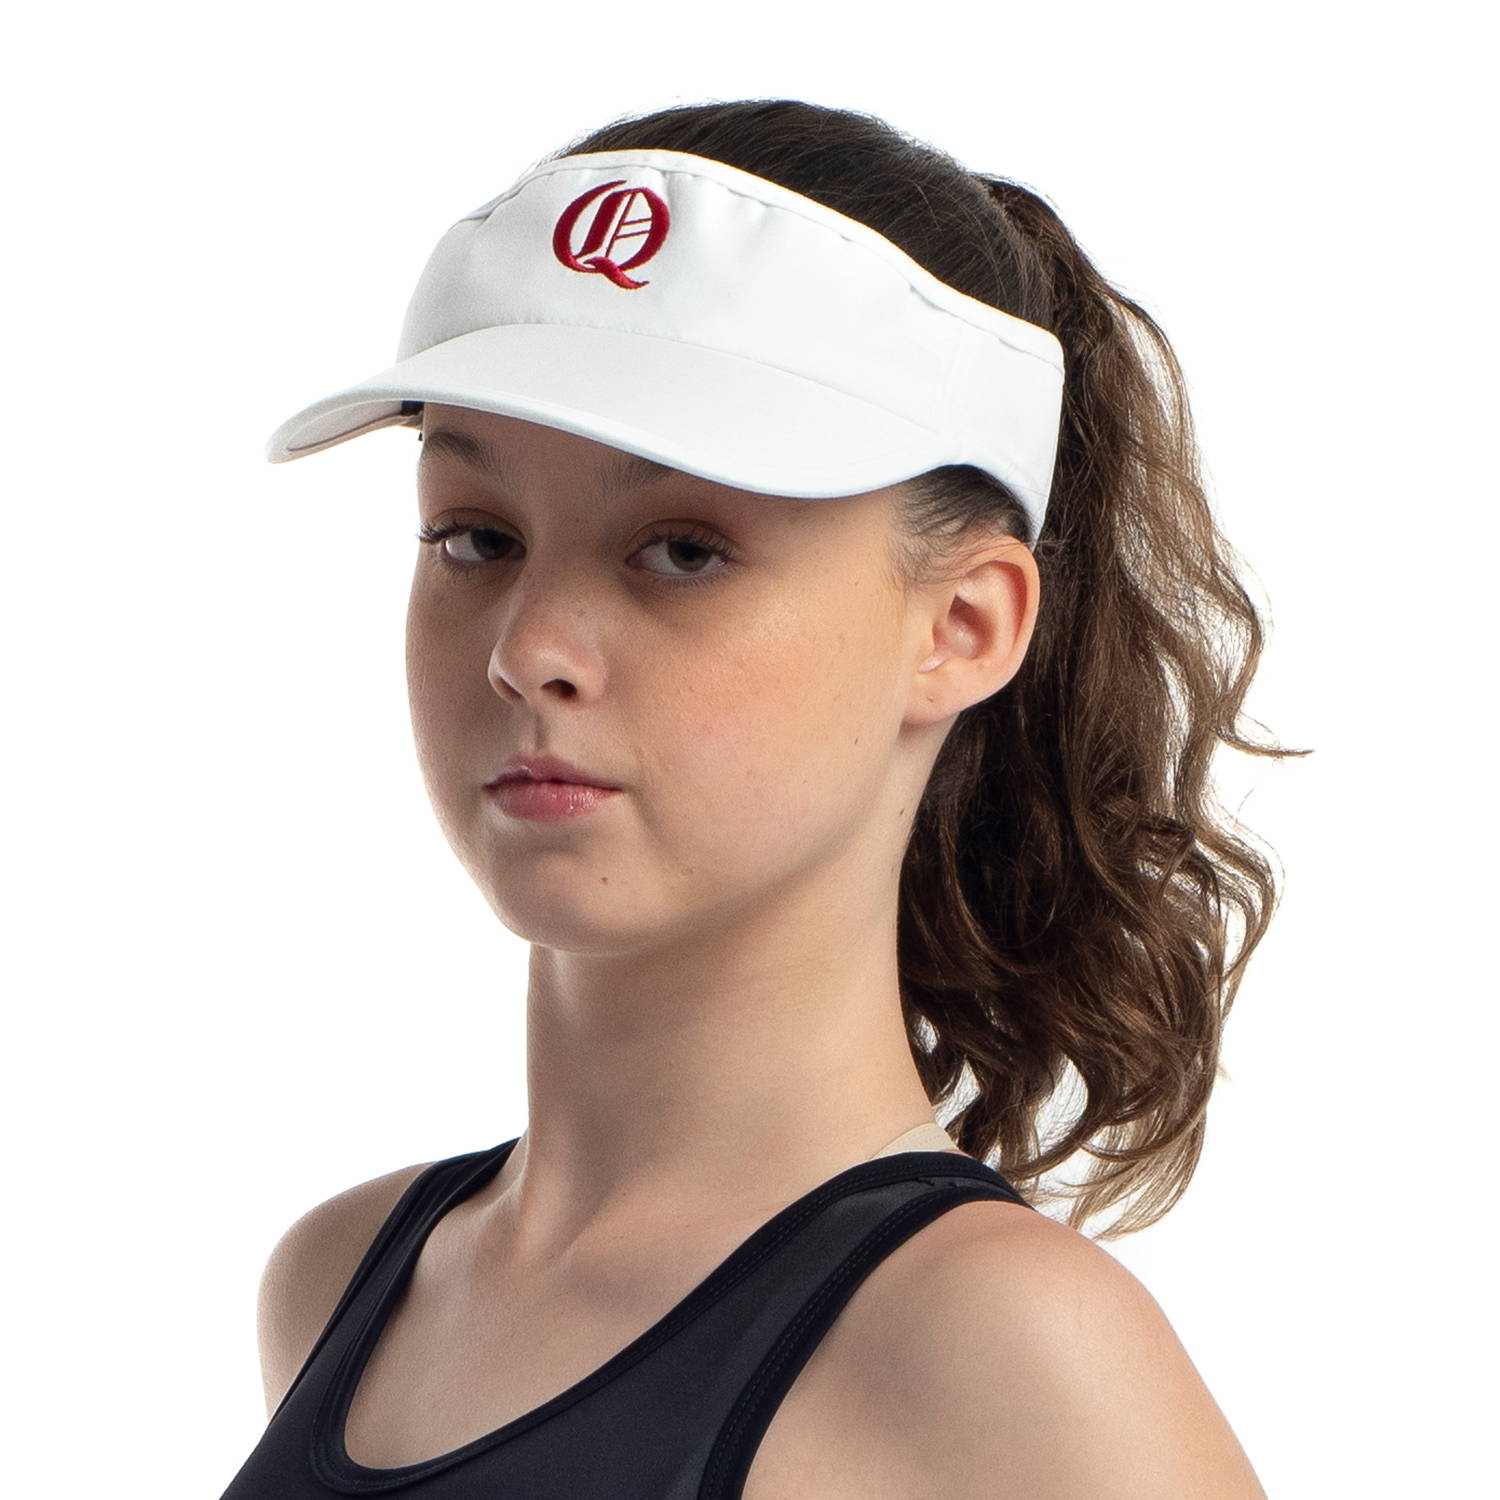 Custom rowing visor for Queenwood School by Valour Sport